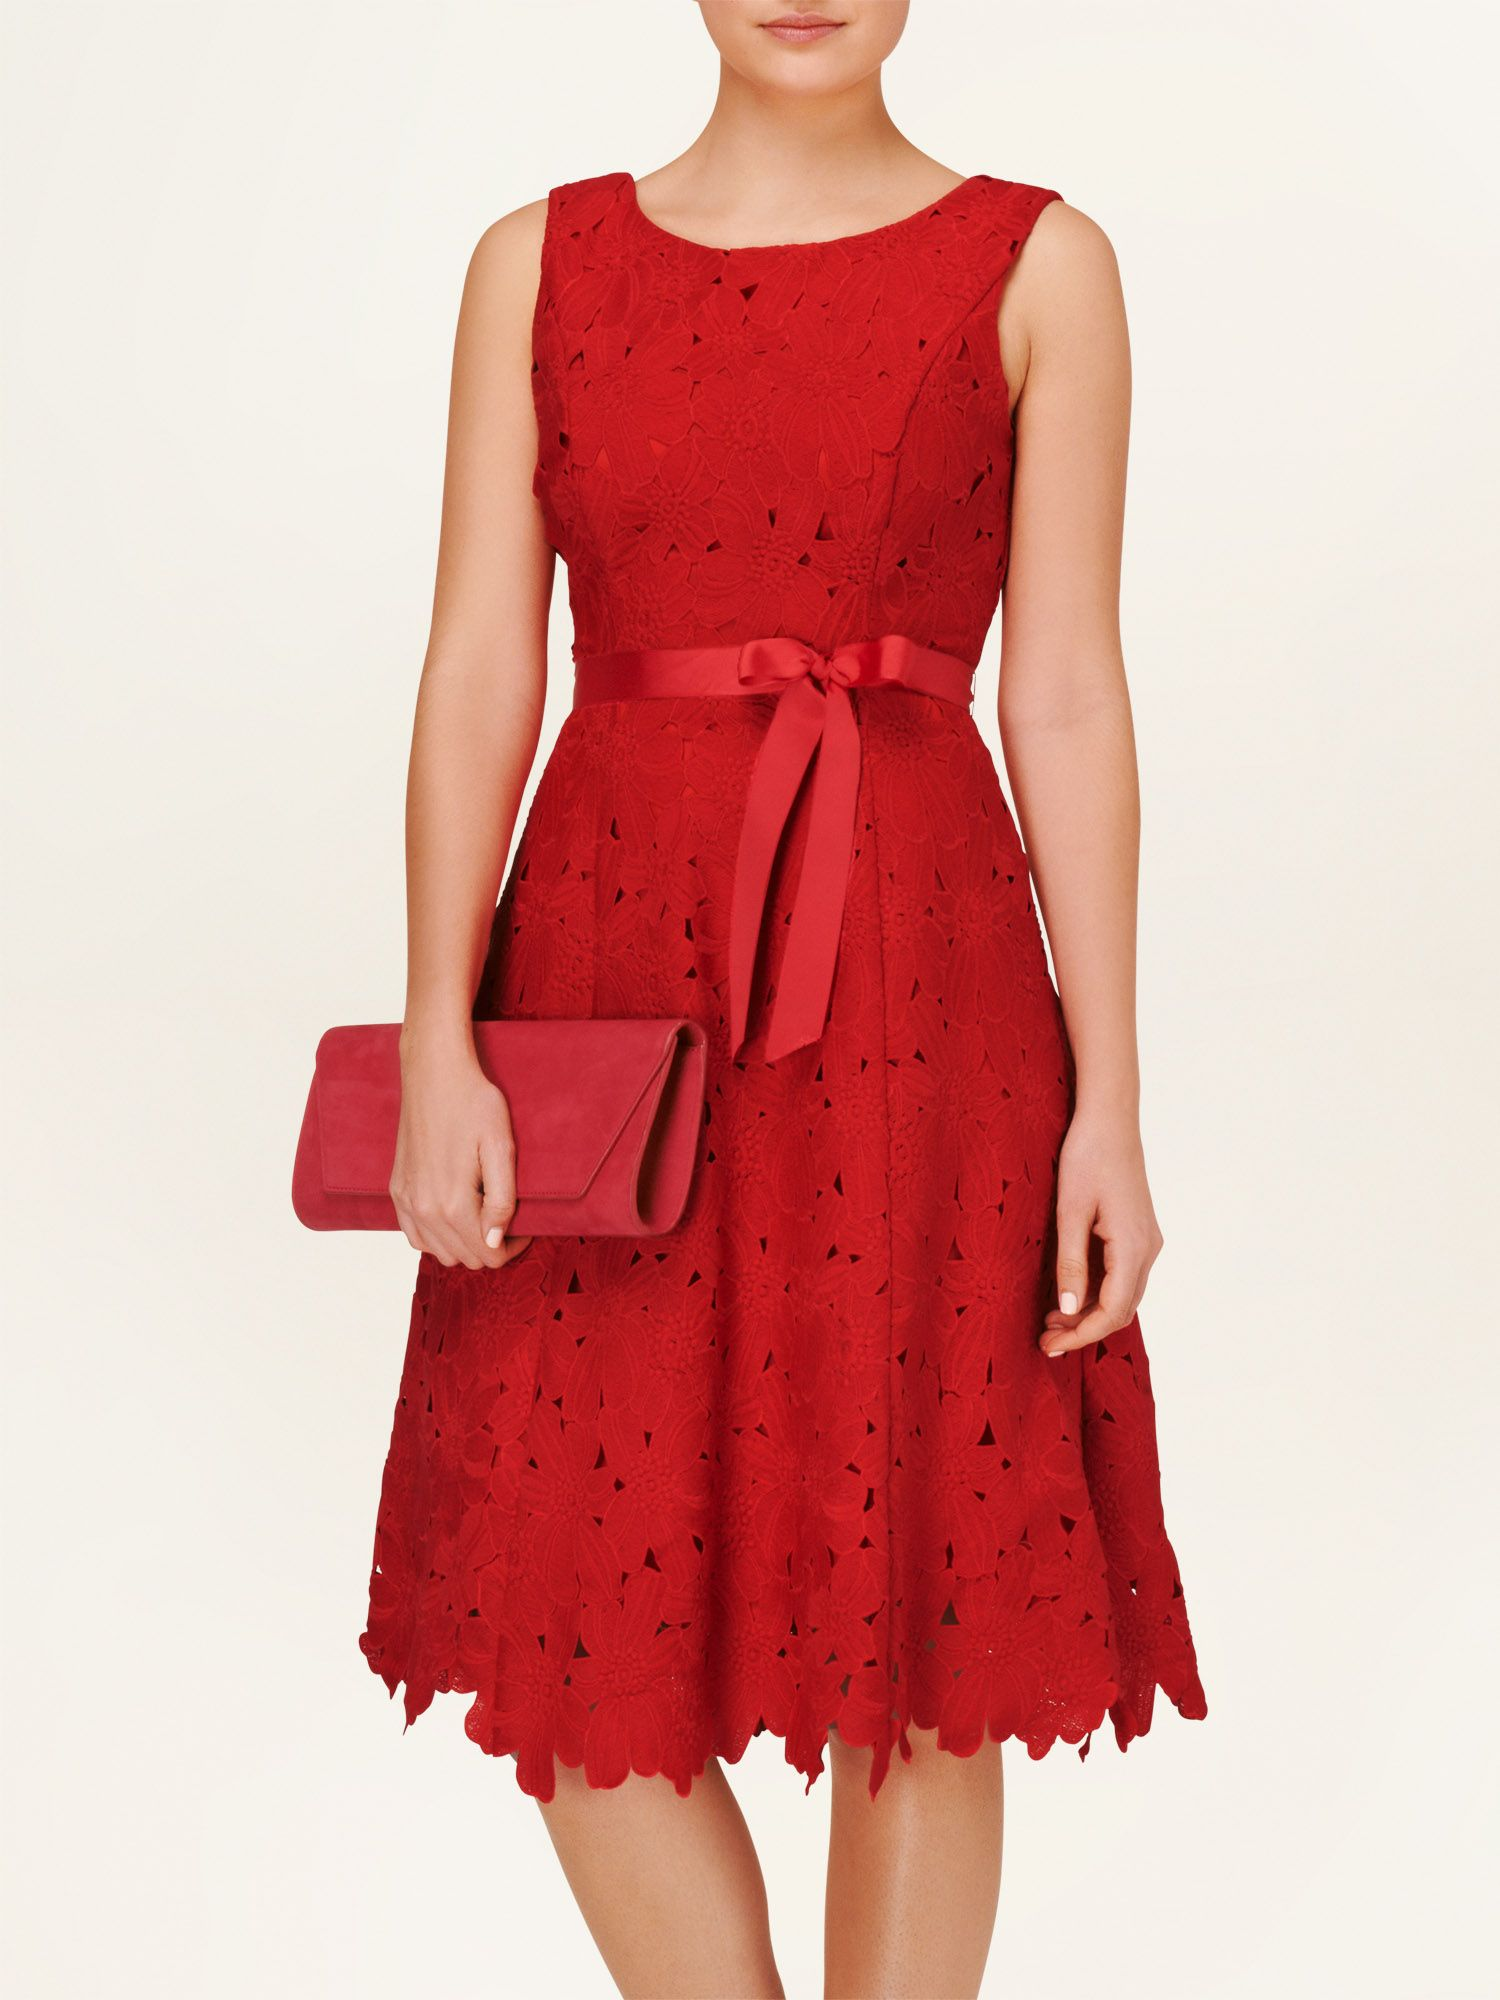 Fabia embroidered fit and flare dress